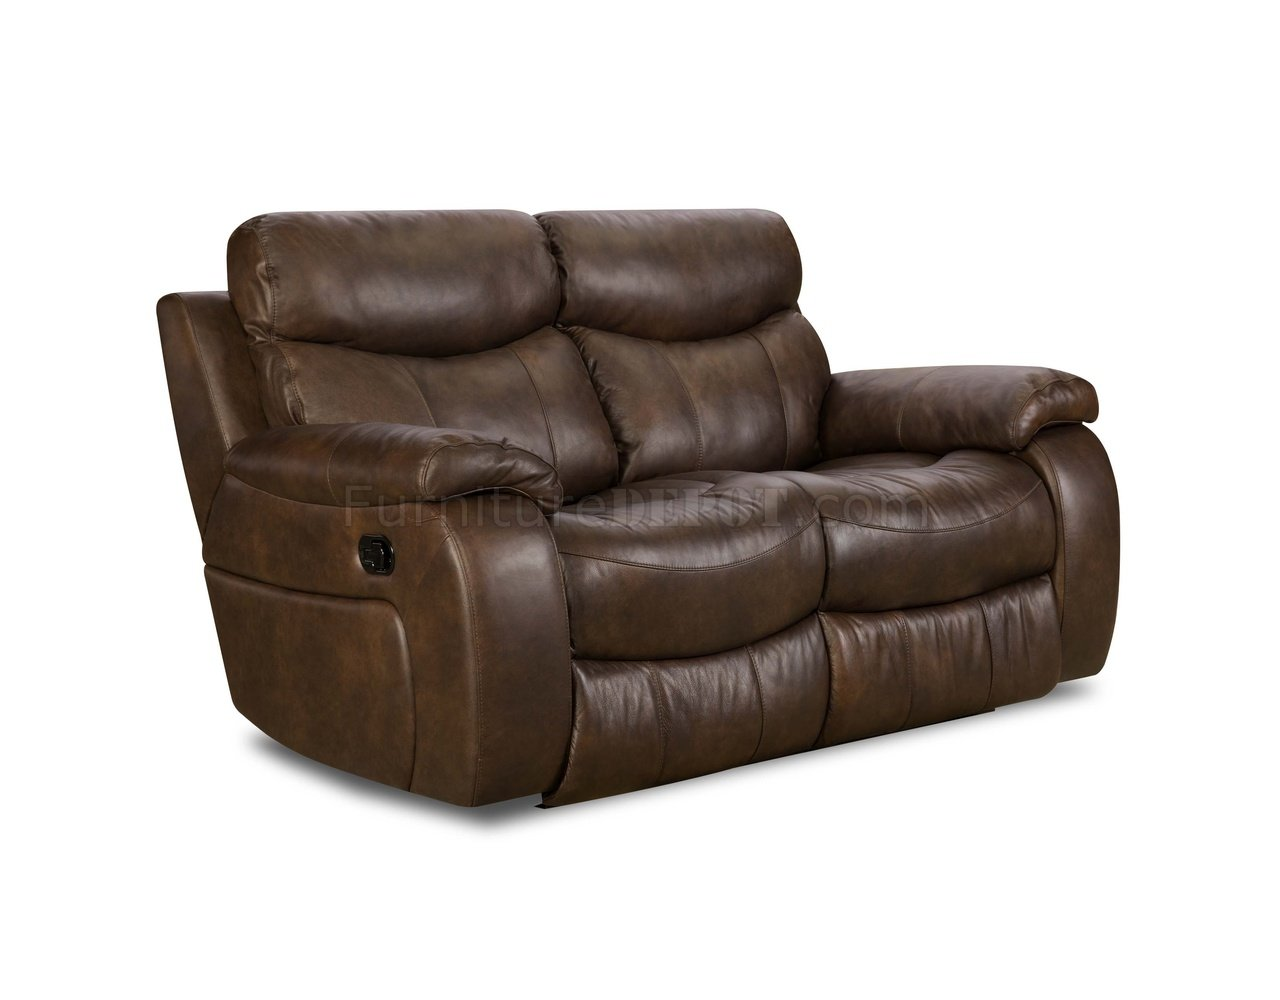 Grain Leather Sectional Recliner